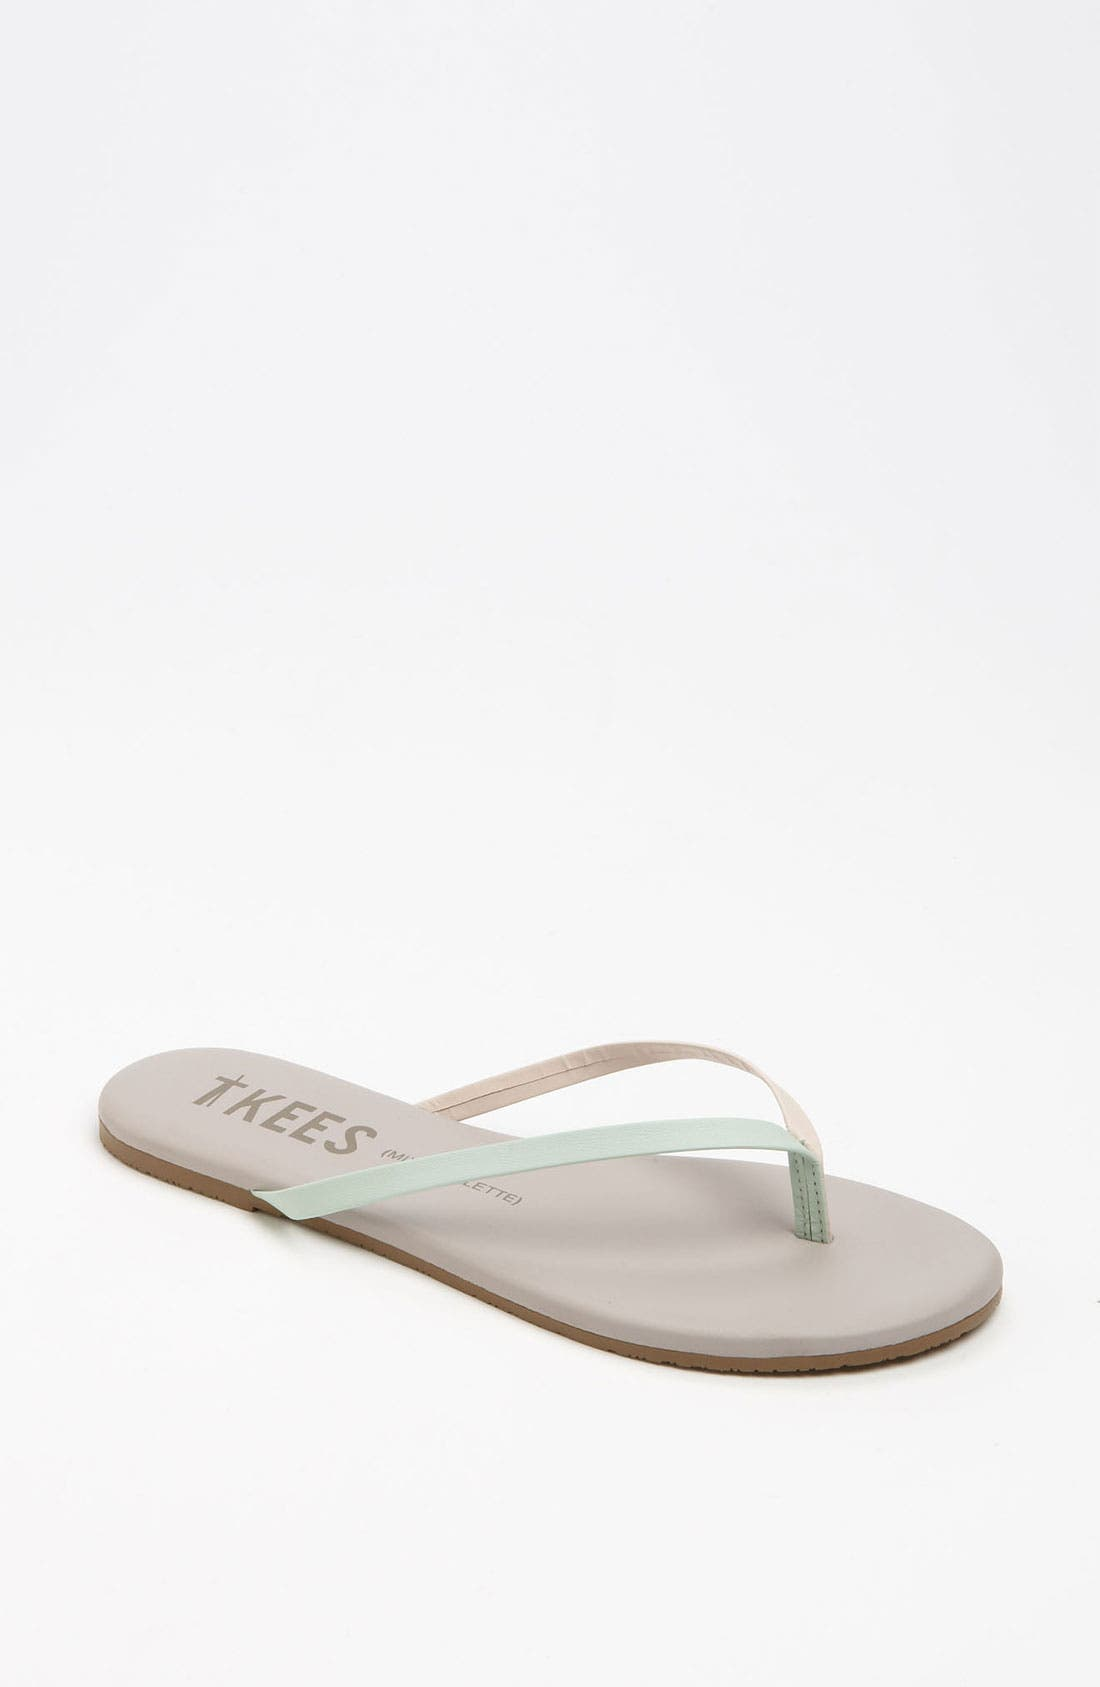 Main Image - TKEES Flip Flop